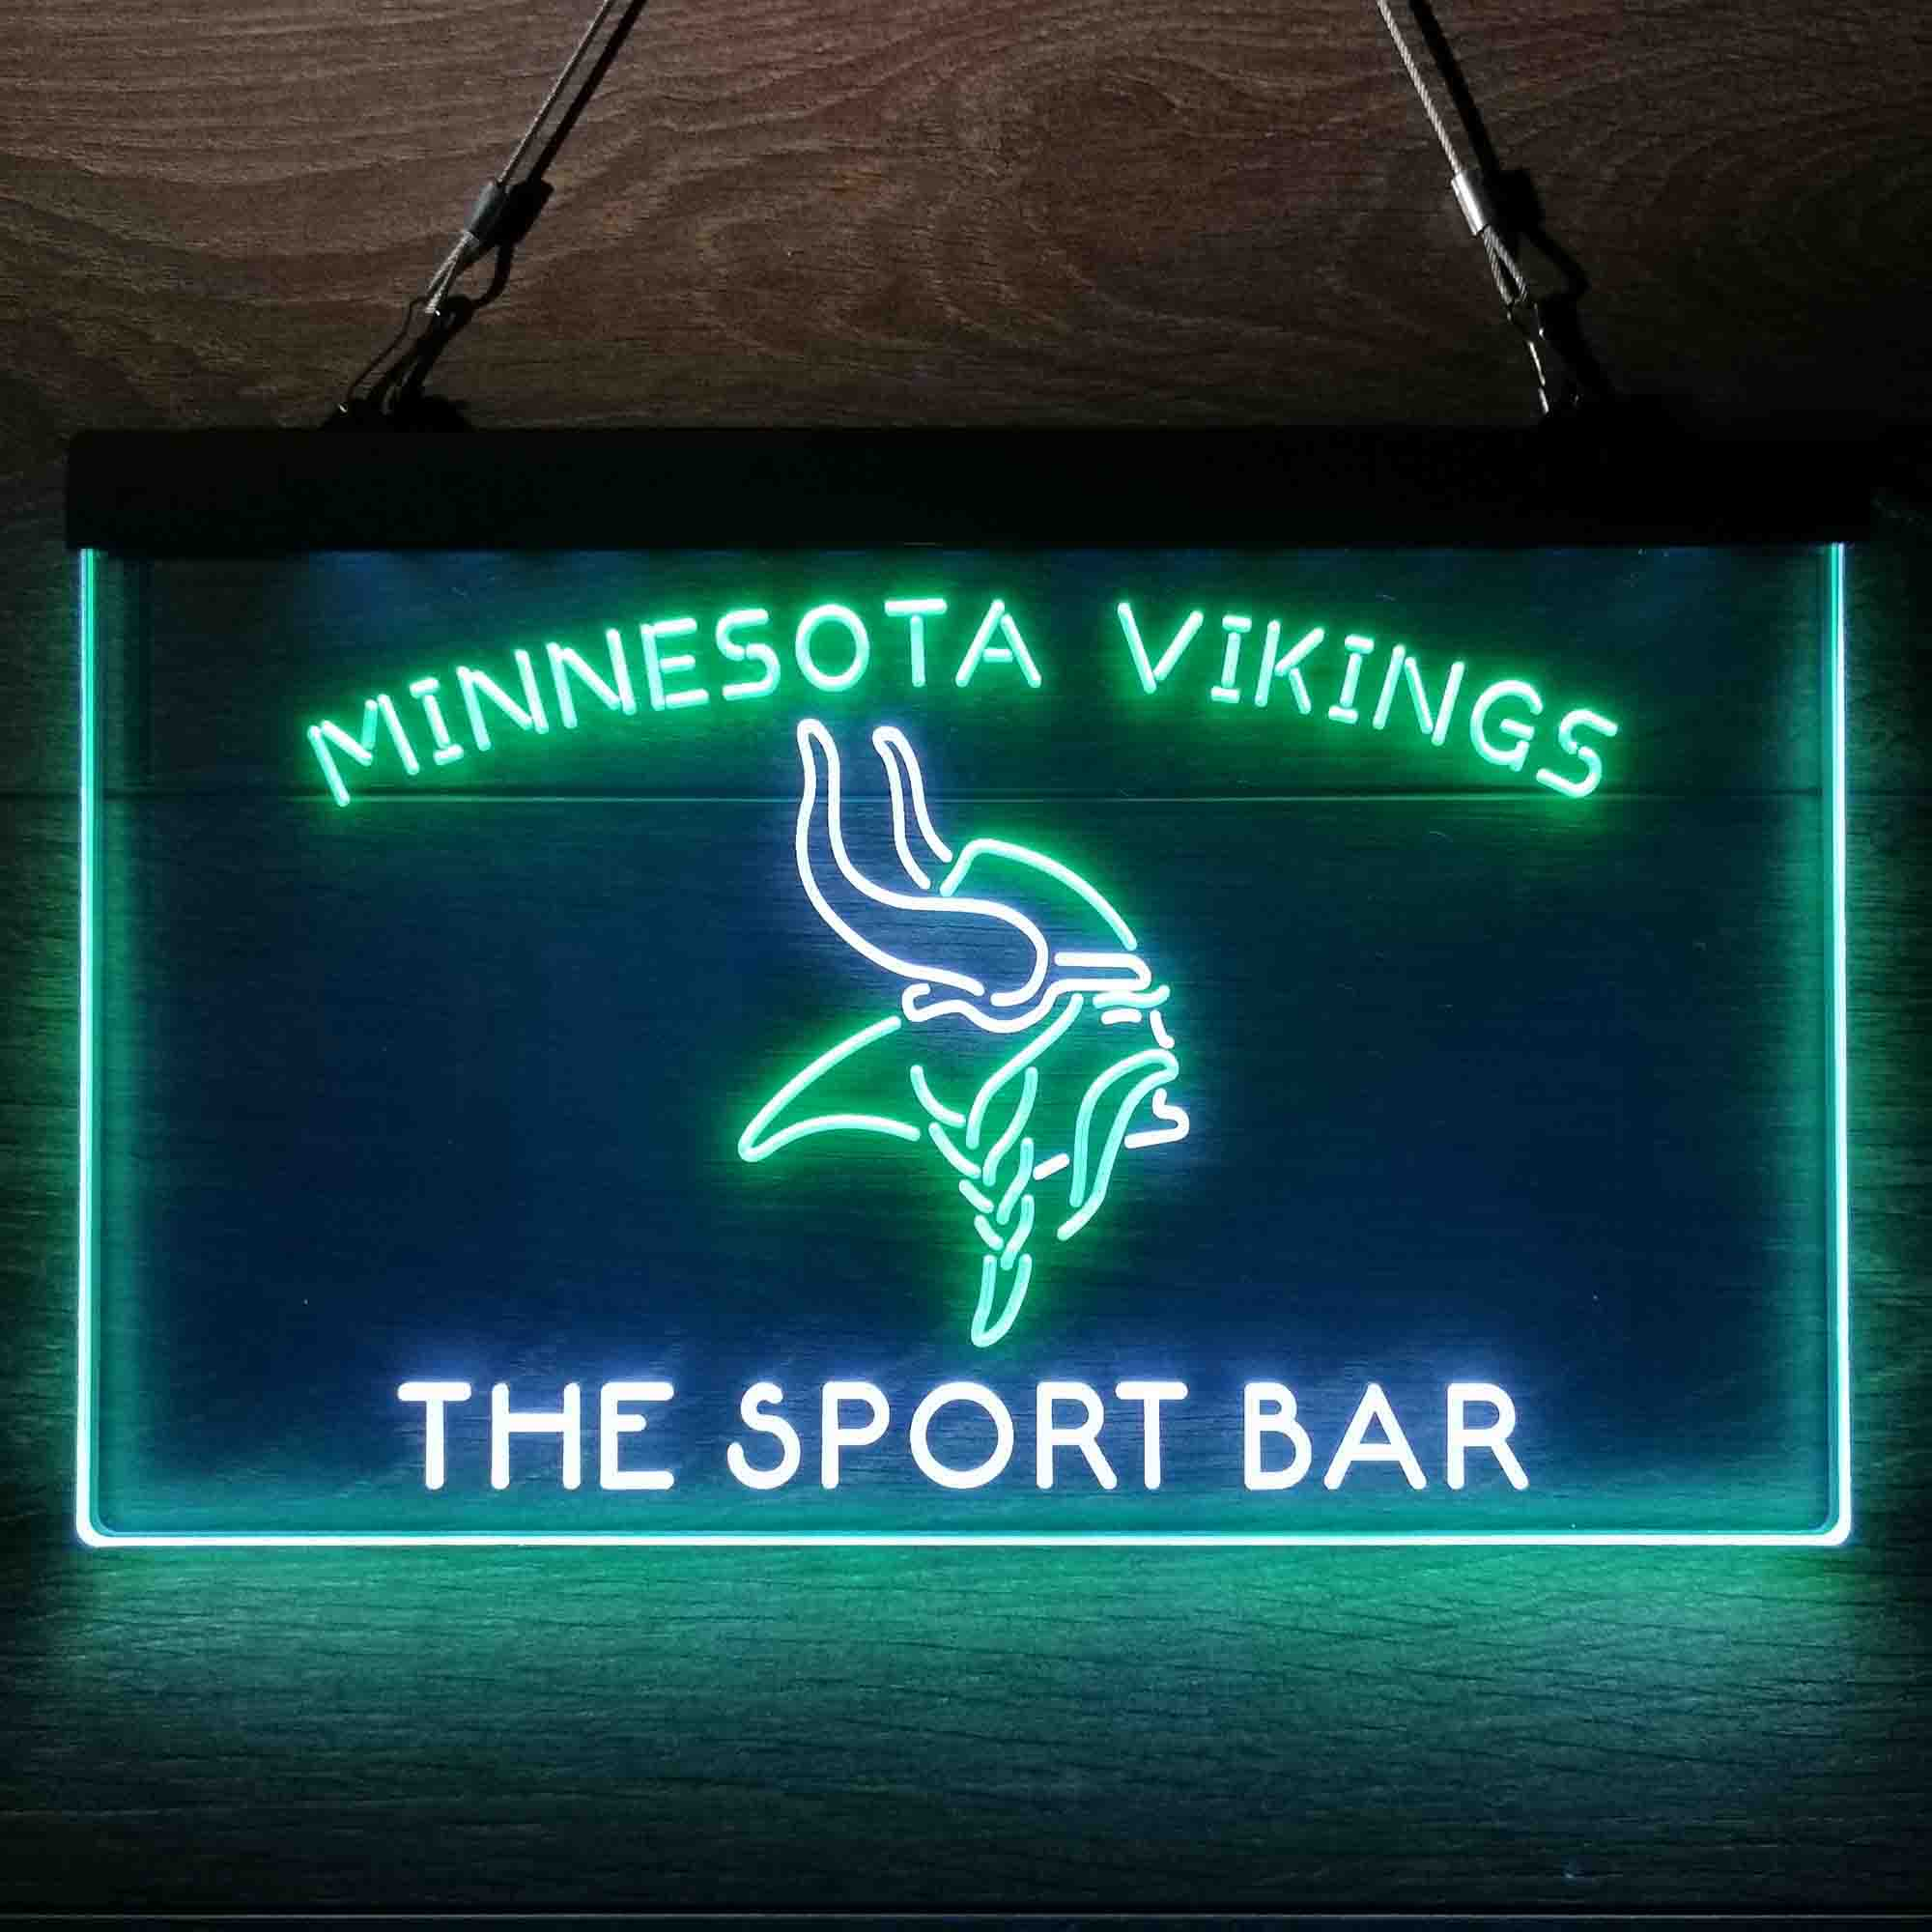 Personalized Custom Minnesota Vikings NFL Football Club Neon-Like LED Sign